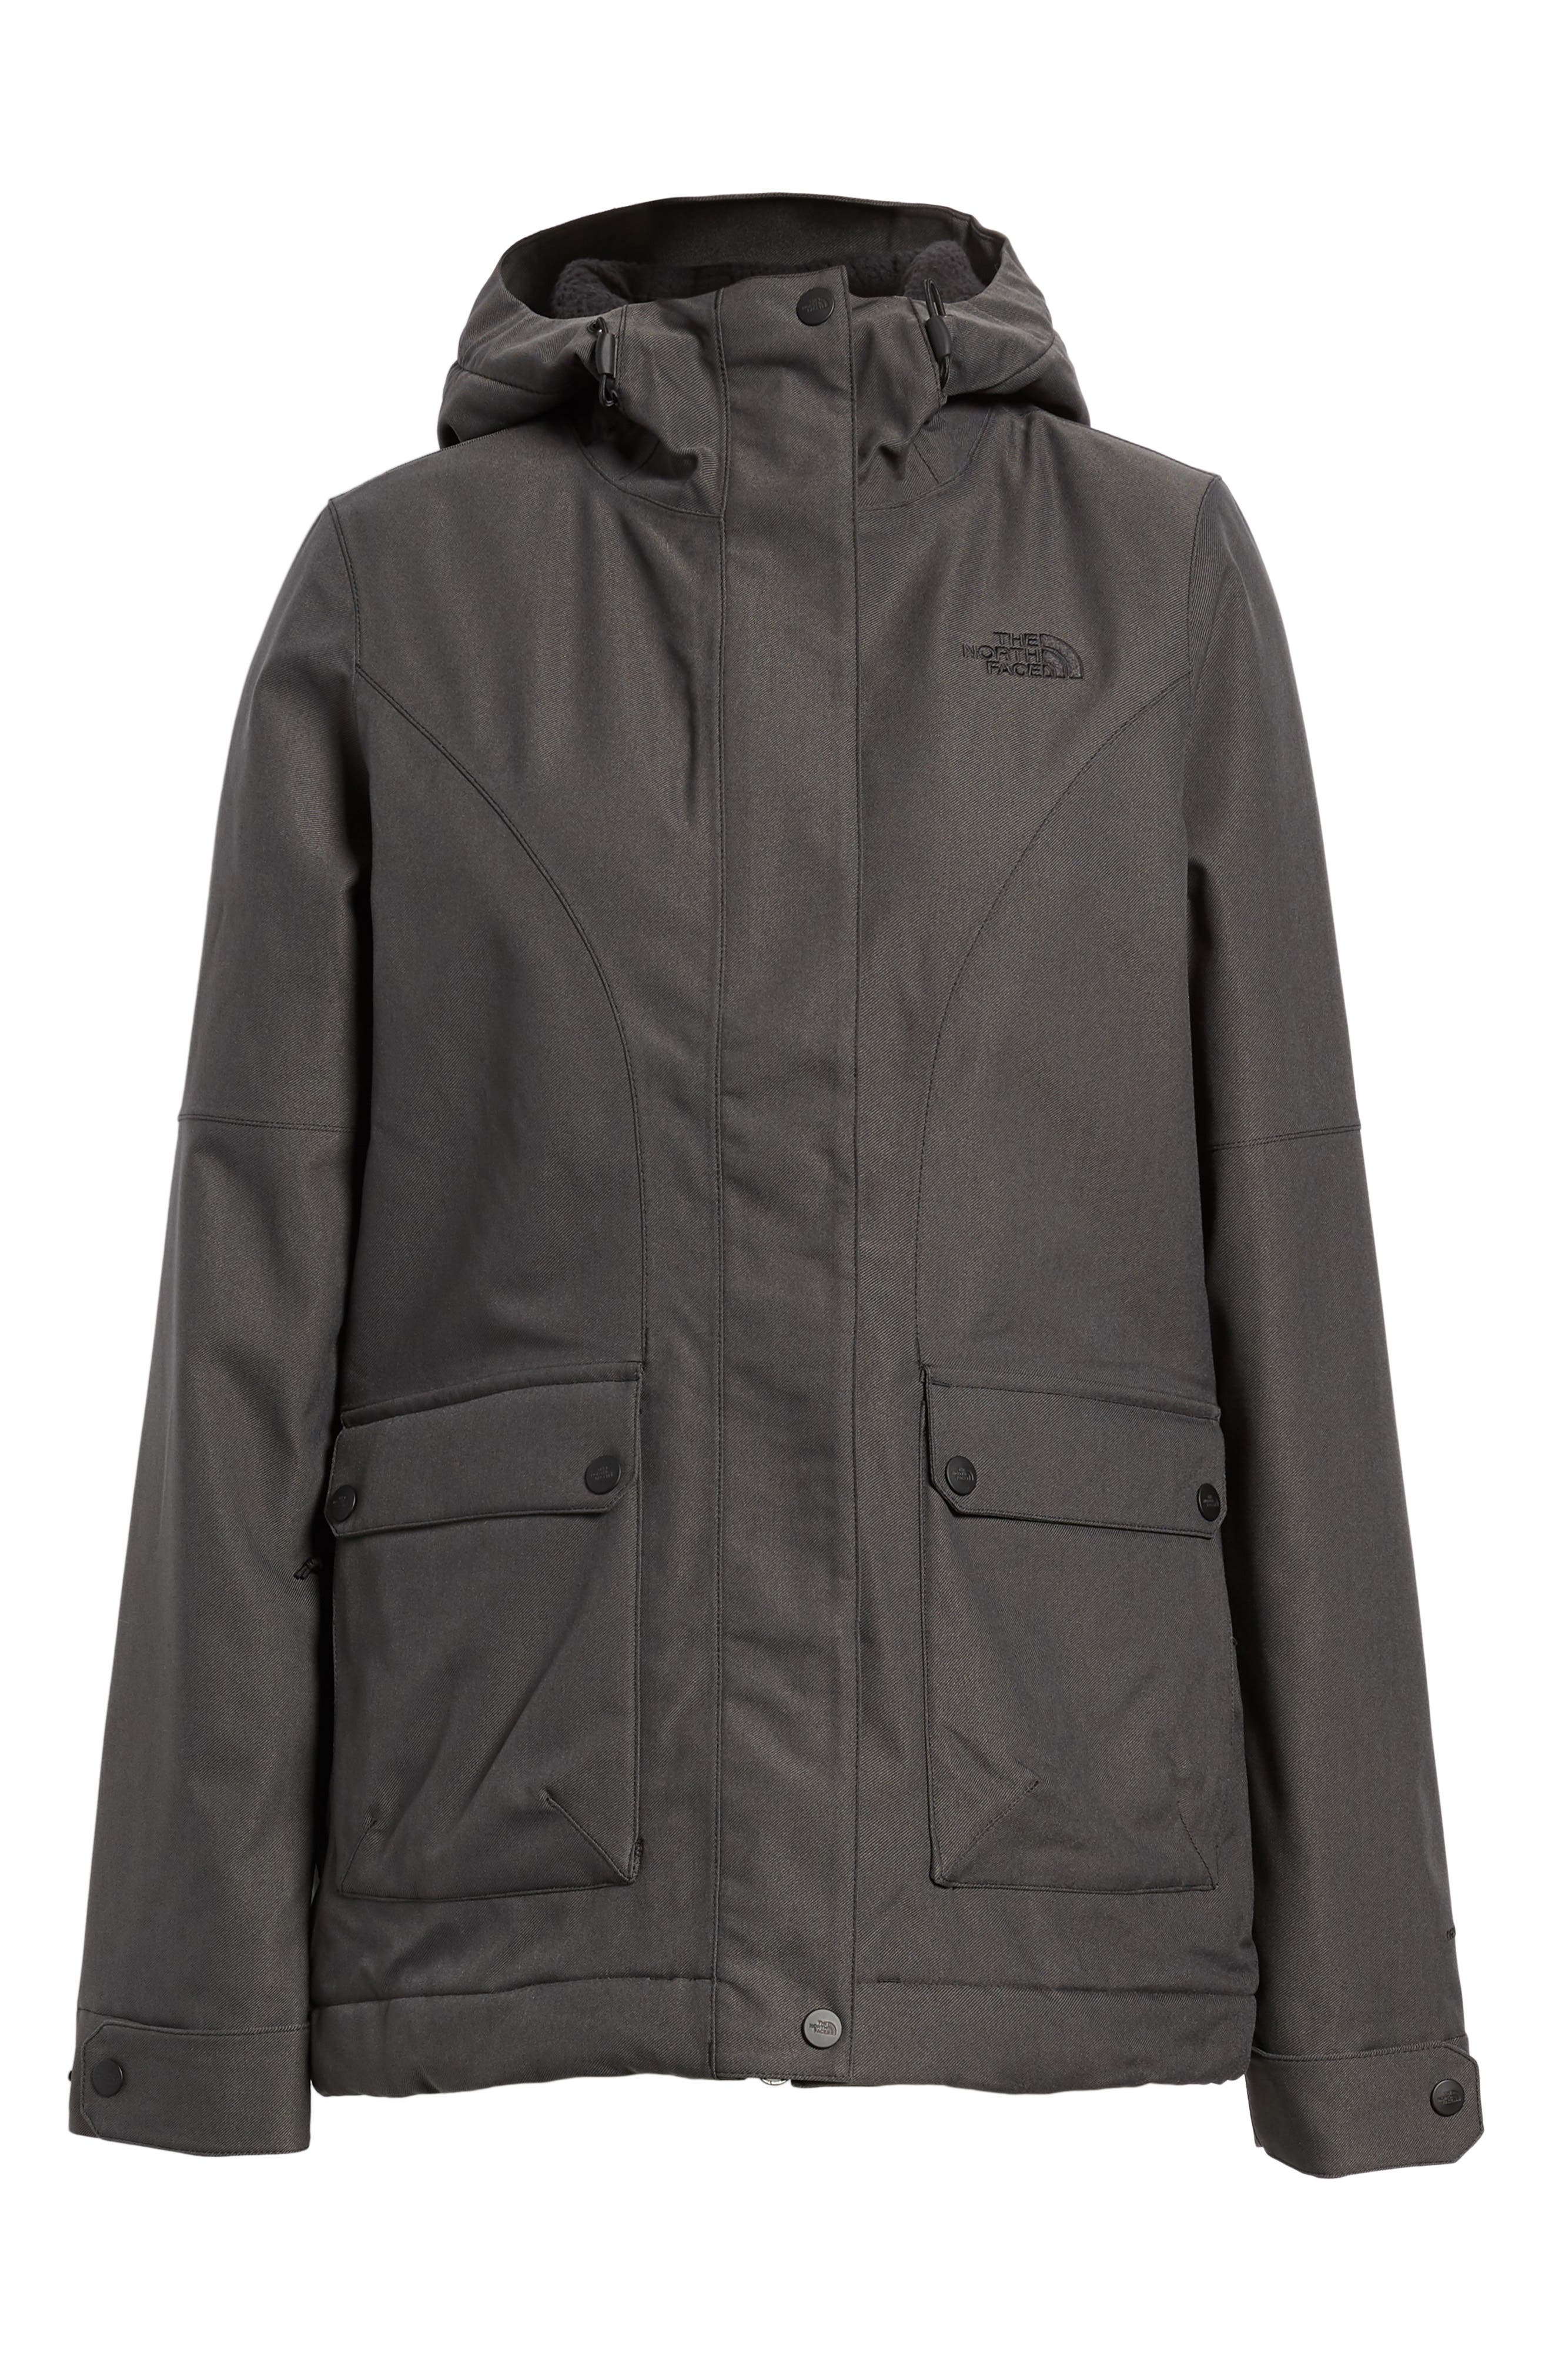 Main Image - The North Face Firesyde Field Jacket